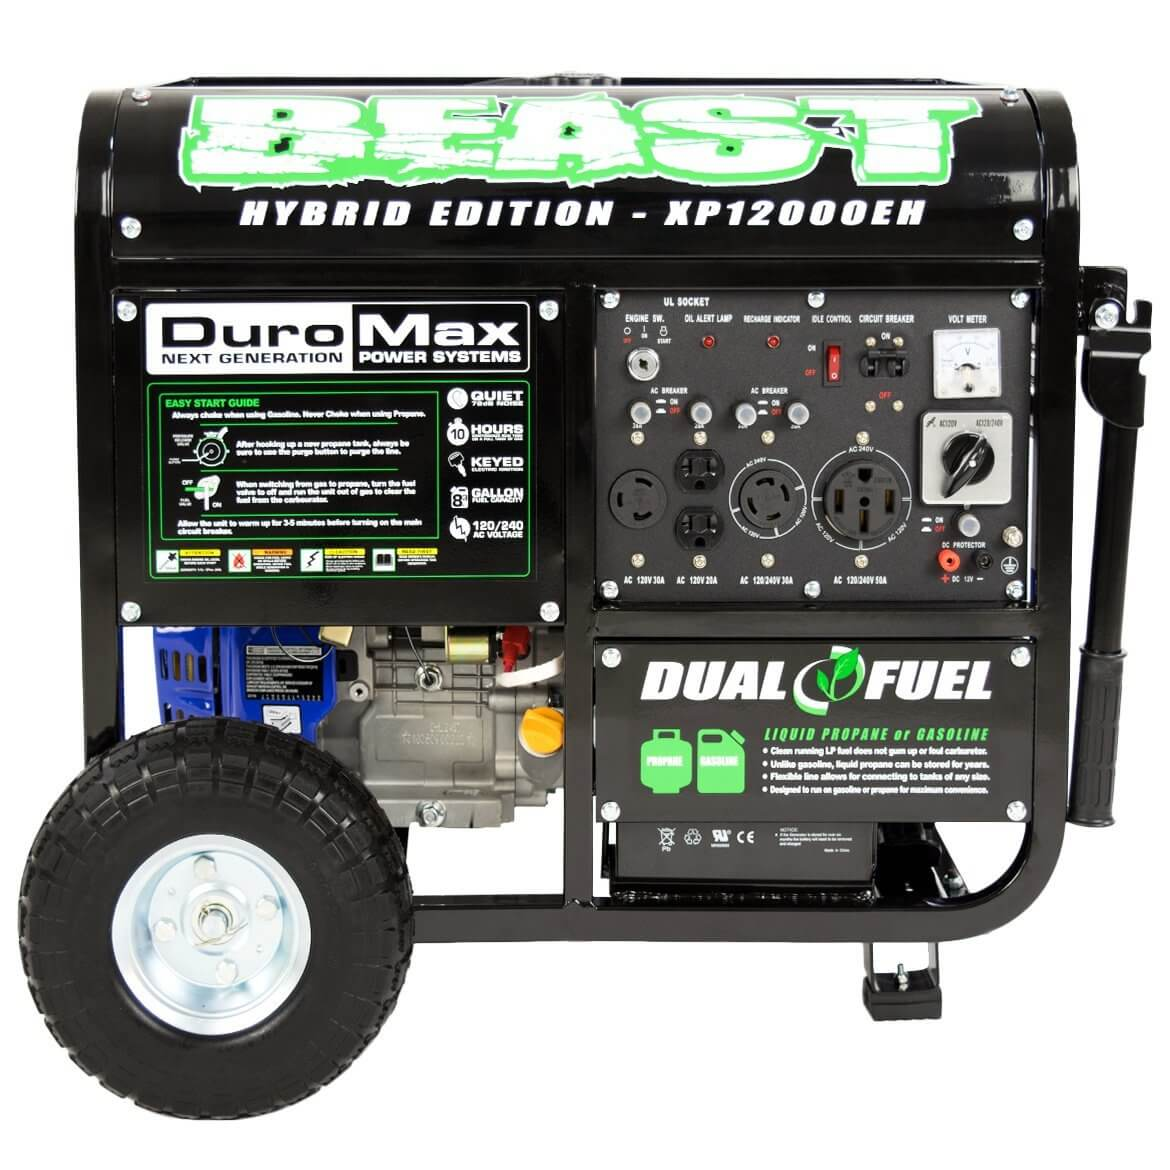 50 Amp Generator Buying Guide - What to look for